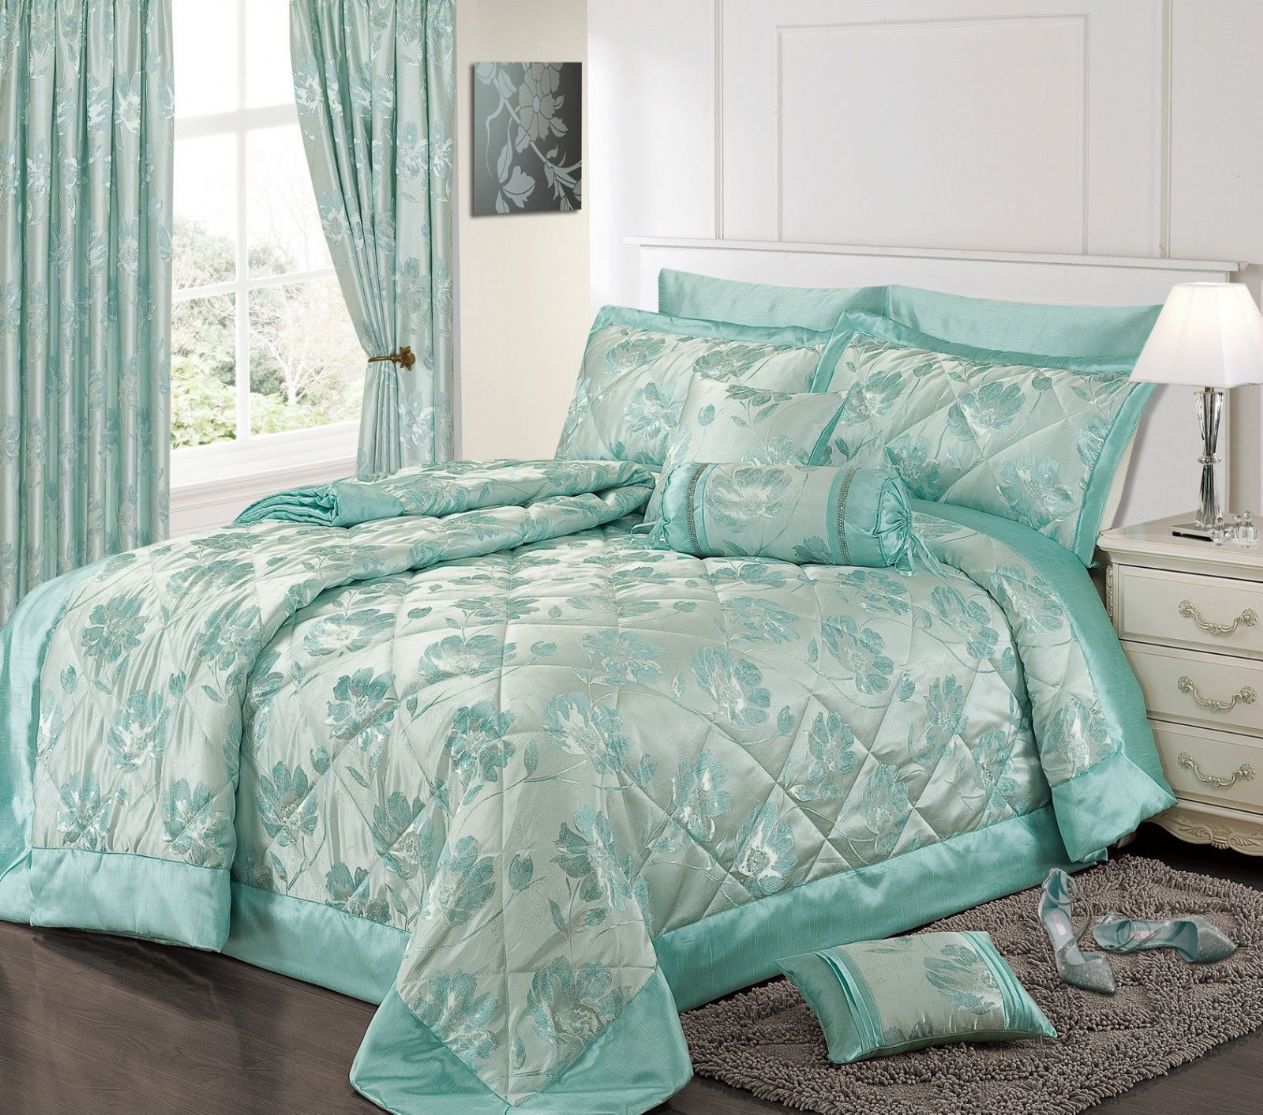 DUCK EGG BLUE COLOUR STYLISH FLORAL JACQUARD LUXURY  : duck egg blue colour stylish floral jacquard luxury embellished quilted bedspread set 8844 p from www.fabuloushomefurnishings.co.uk size 1263 x 1115 jpeg 258kB